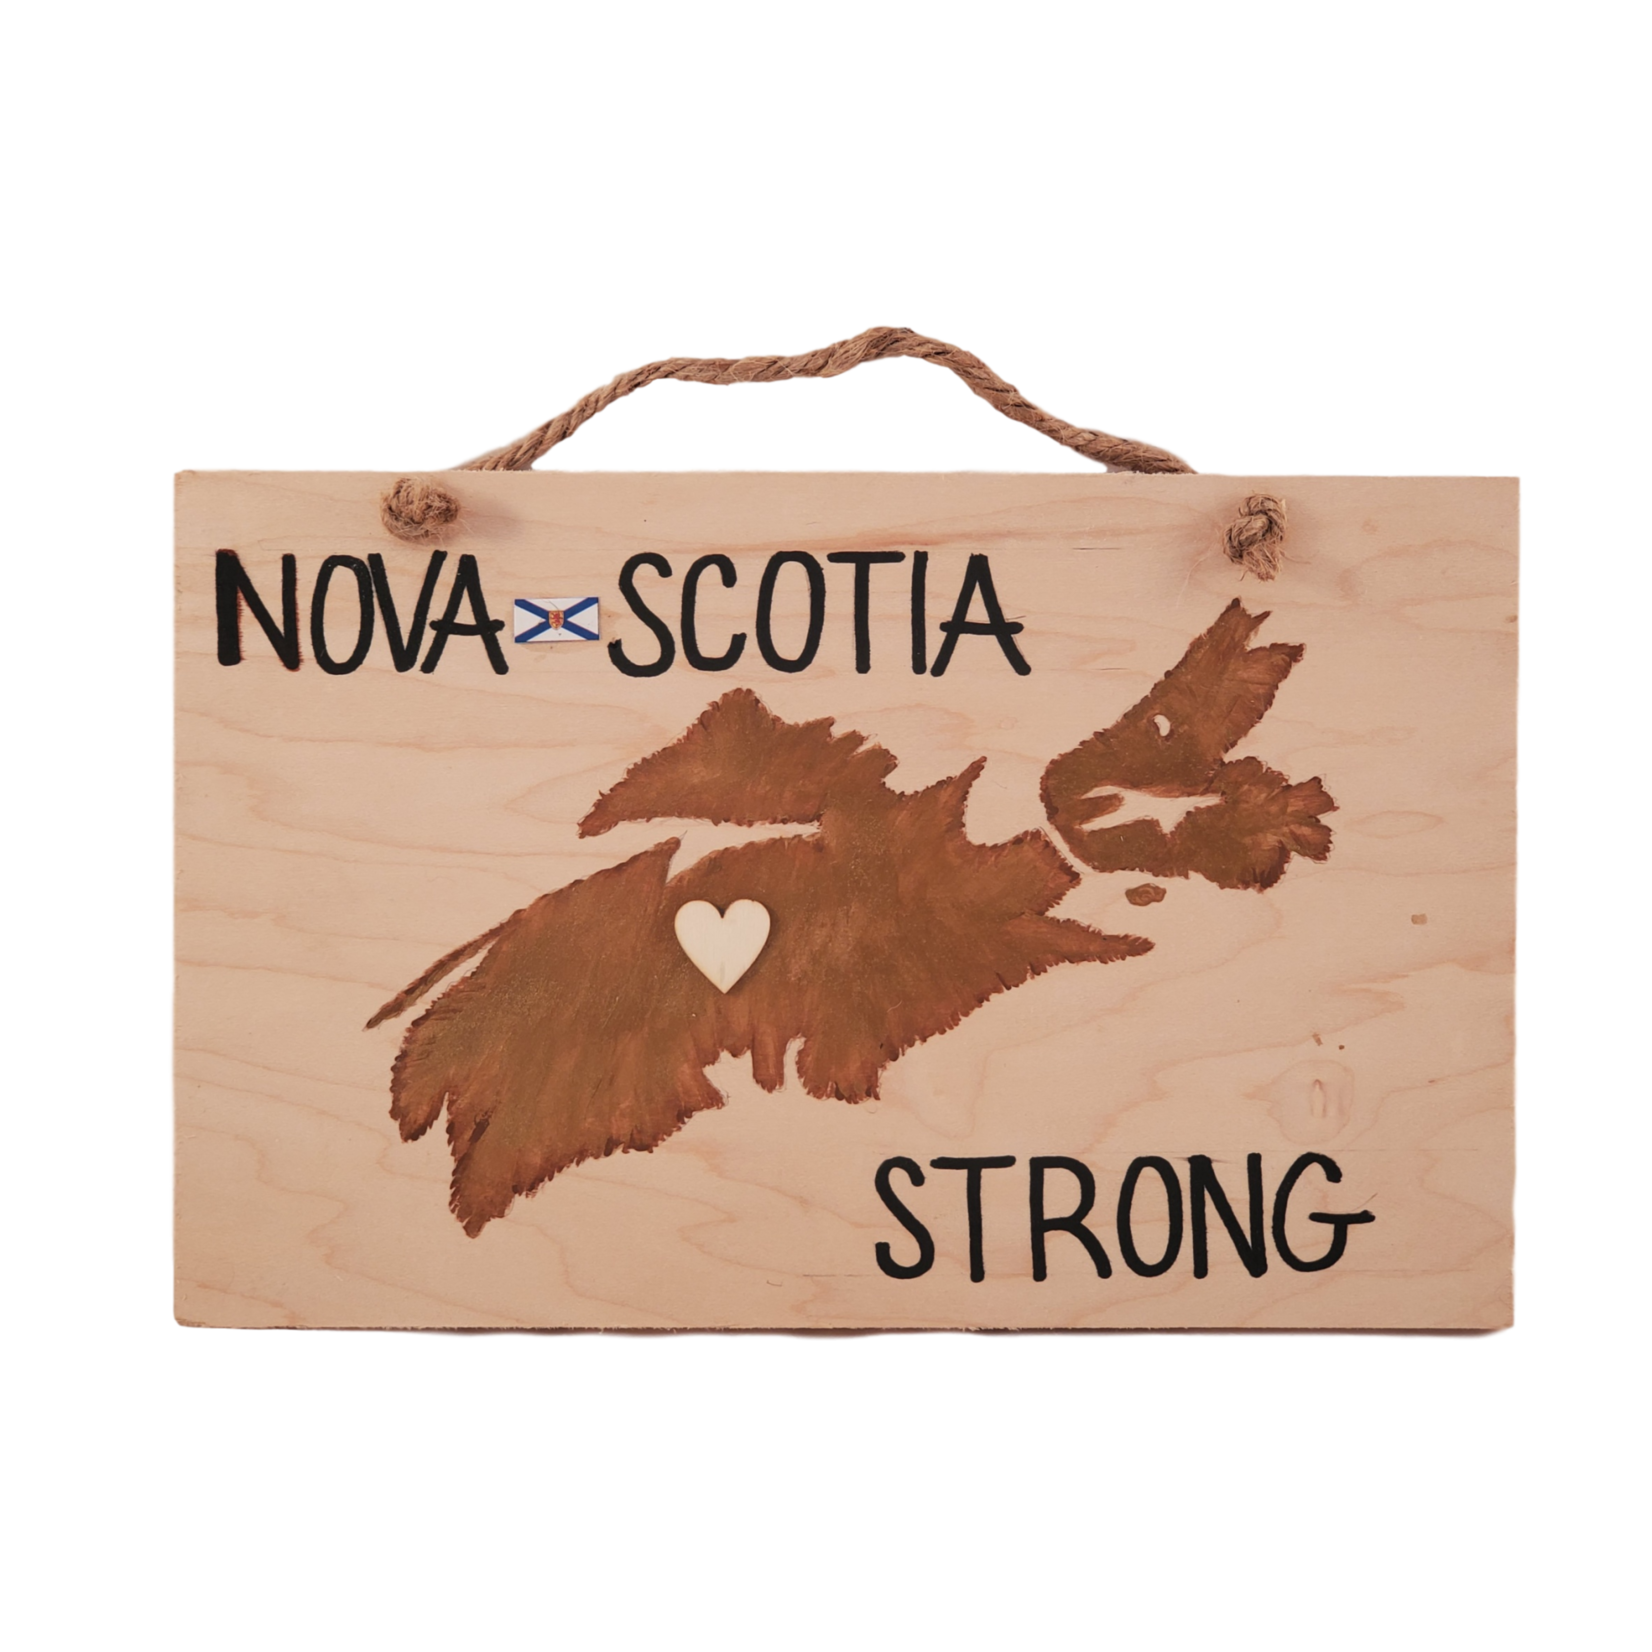 Off The Wall Gallery Hand-painted Nova Scotia Strong Sign